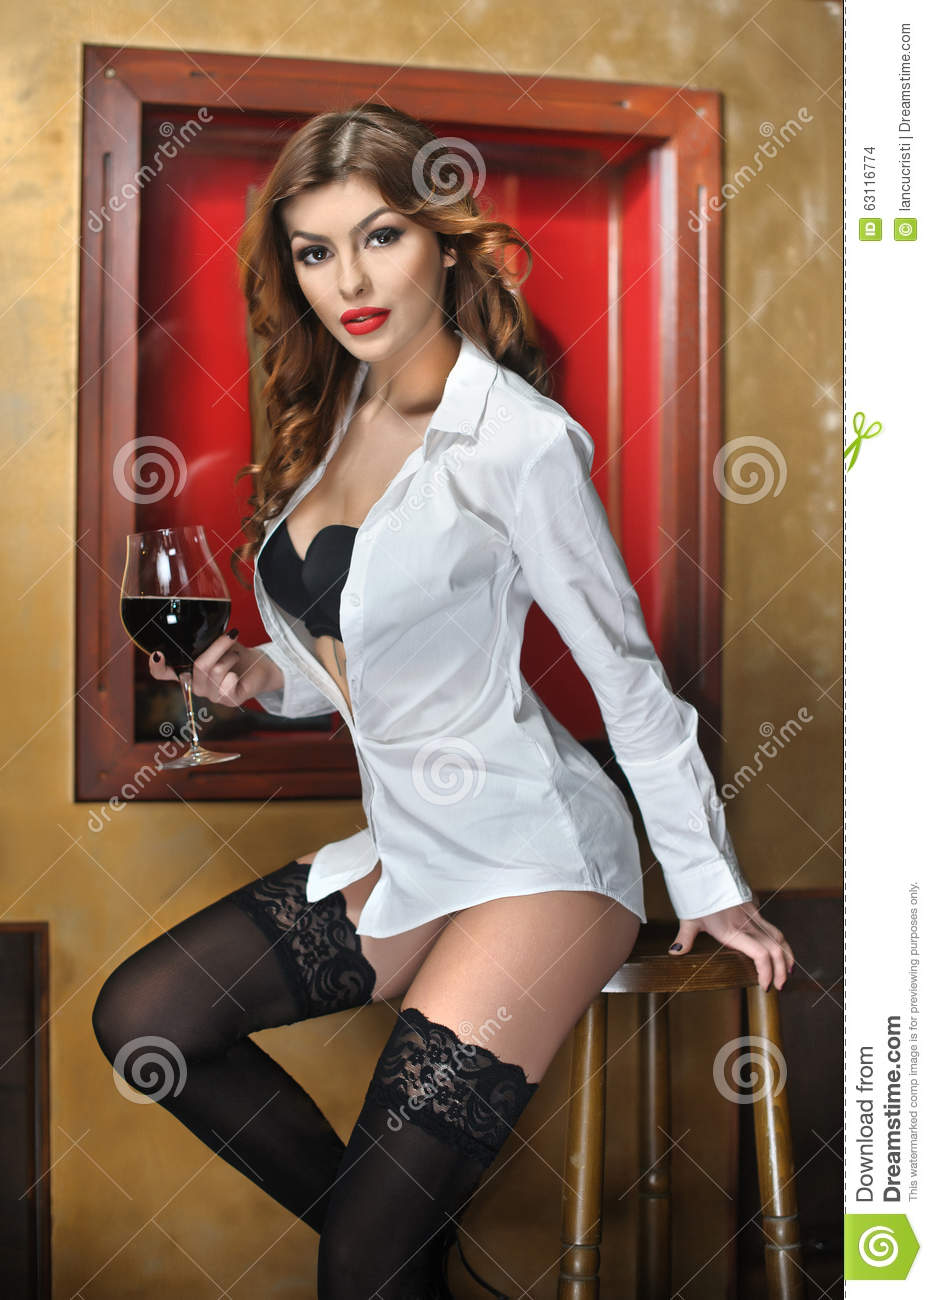 Beautiful Sexy Woman Holding A Glass Of Wine And Posing  : beautiful sexy woman holding glass wine posing provocatively portrait attractive girl wearing white male shirt over 63116774 from www.dreamstime.com size 933 x 1300 jpeg 132kB